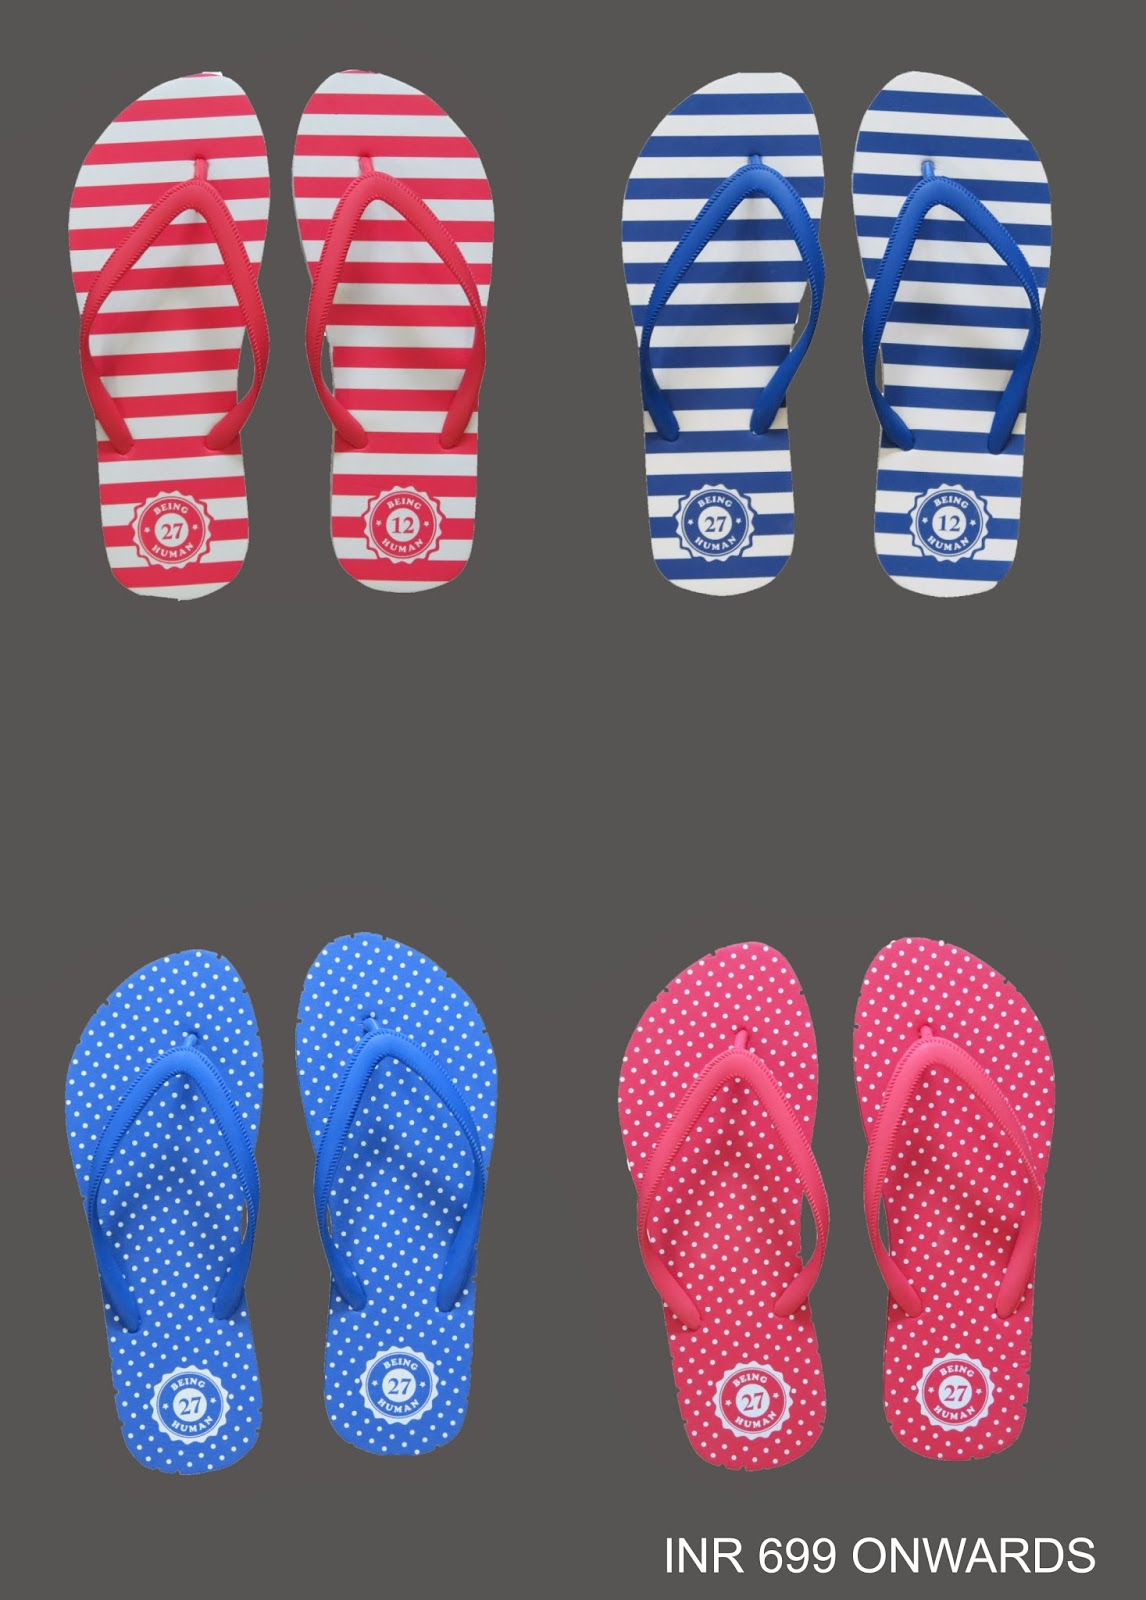 Nautical inspired stripes and dotted slippers